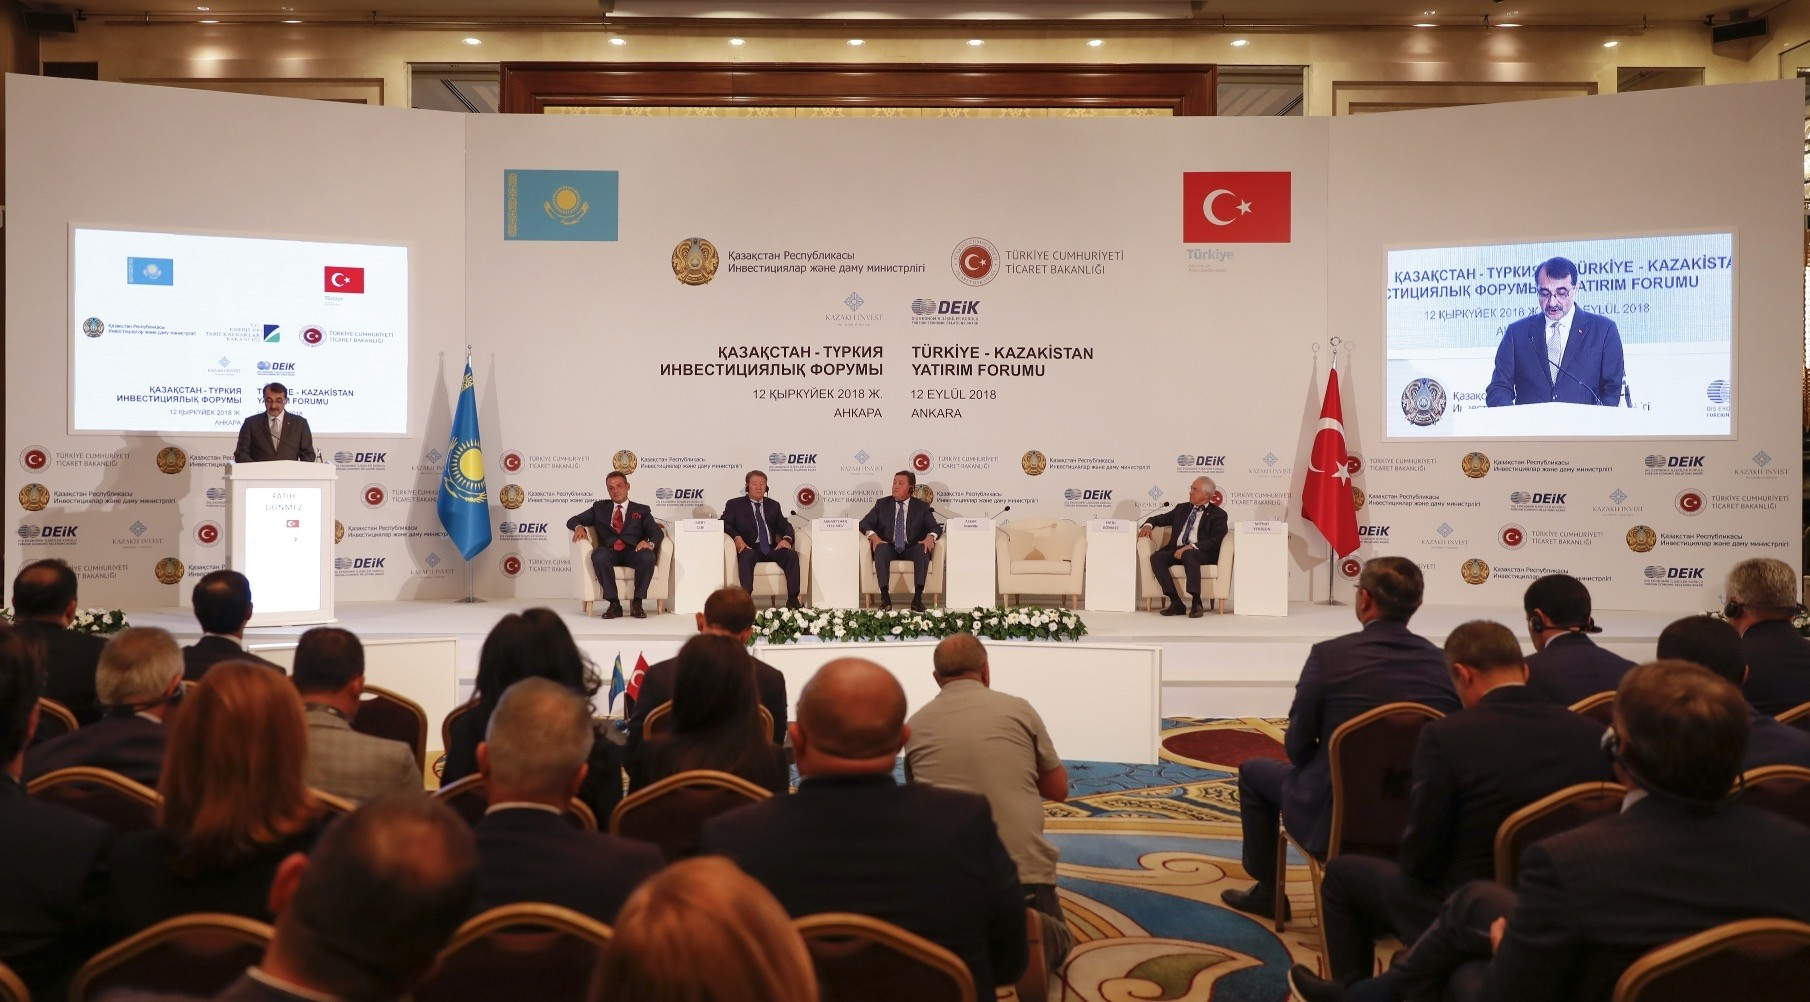 Energy and Natural Resources Minister Fatih Du00f6nmez (L) speaks during the Turkey-Kazakhstan investment forum in Ankara, Sept. 12.